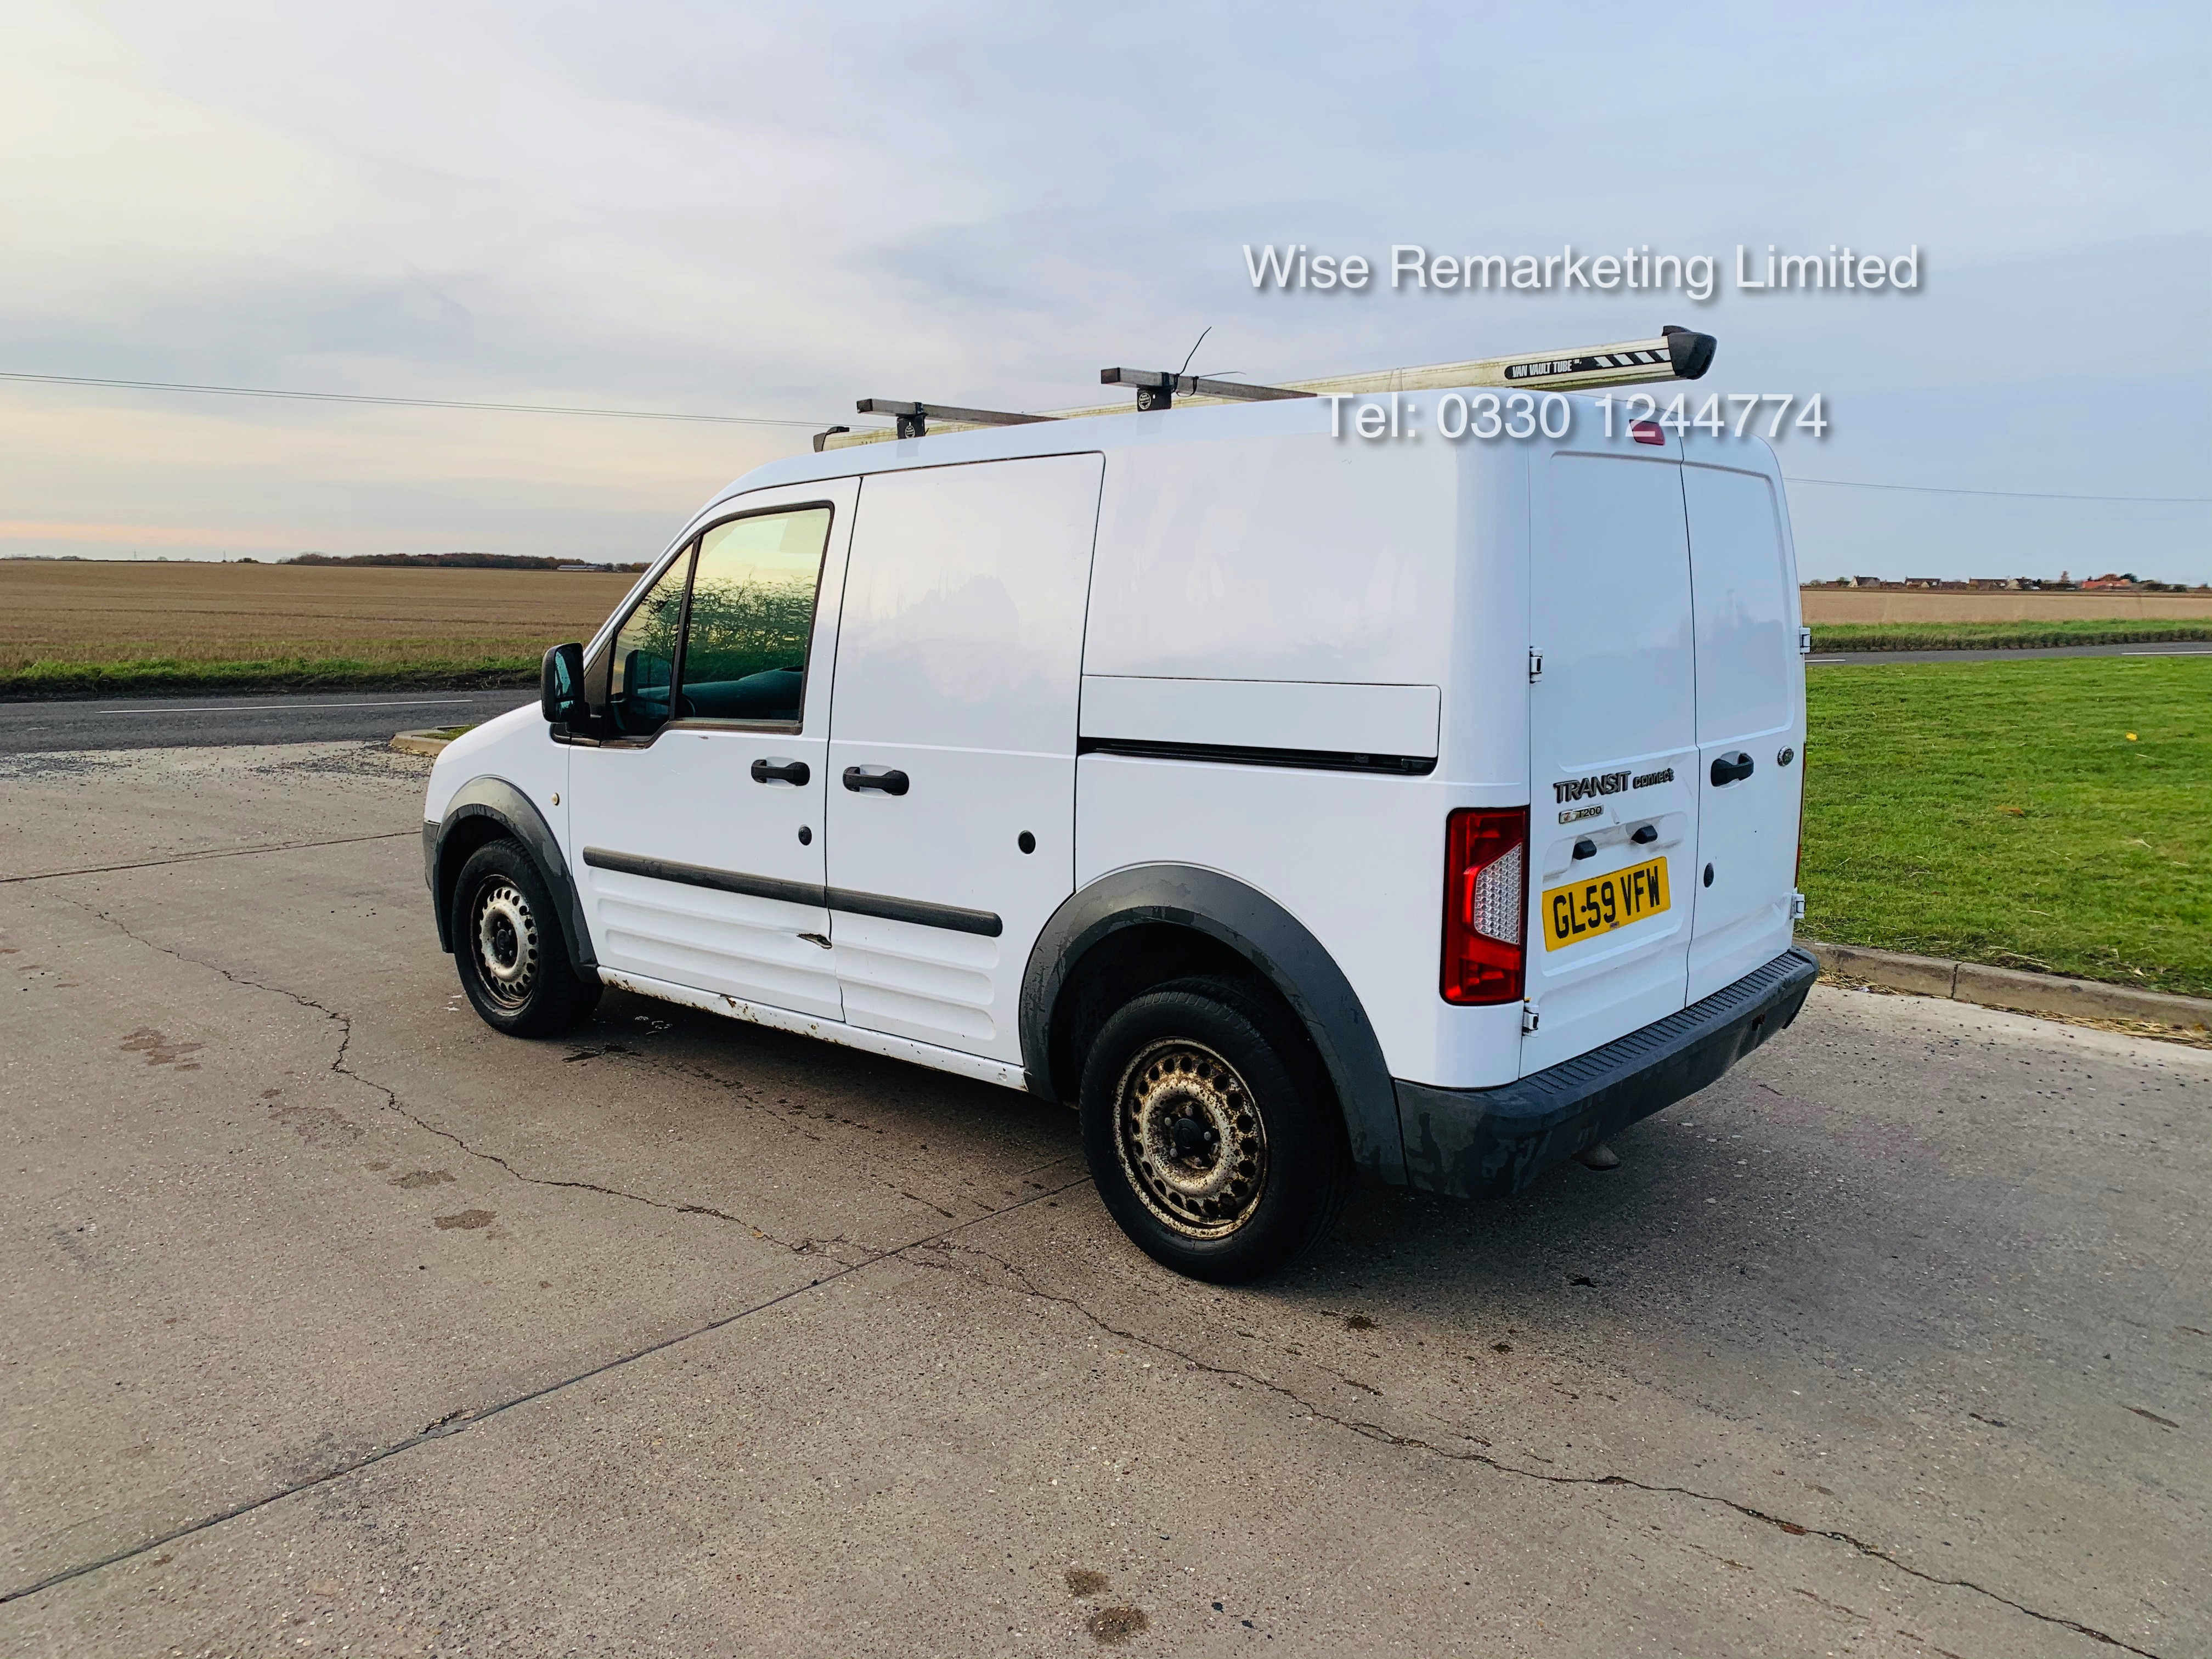 Ford Transit Connect T200 1.8 - 2010 Model - Side Loading Door - Ply Lined - Image 4 of 19